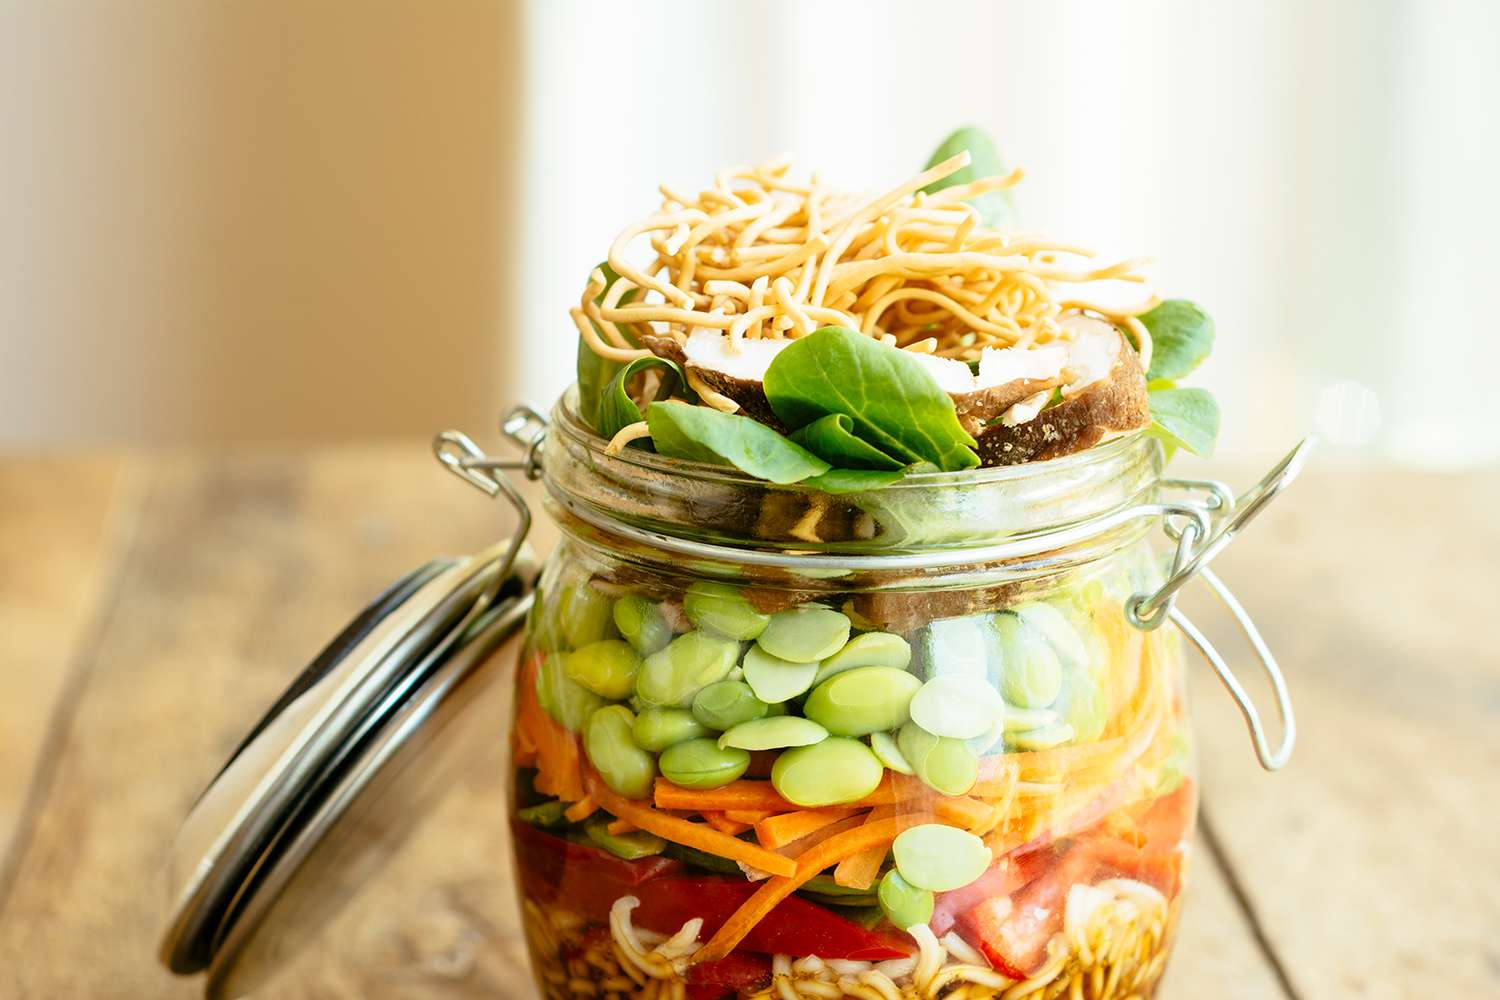 Asian salad in a jar with ramen noodles, red pepper, snow pea pods, carrots, edamame, shiitake mushrooms, salad greens, fried chow mien noodles and dressing